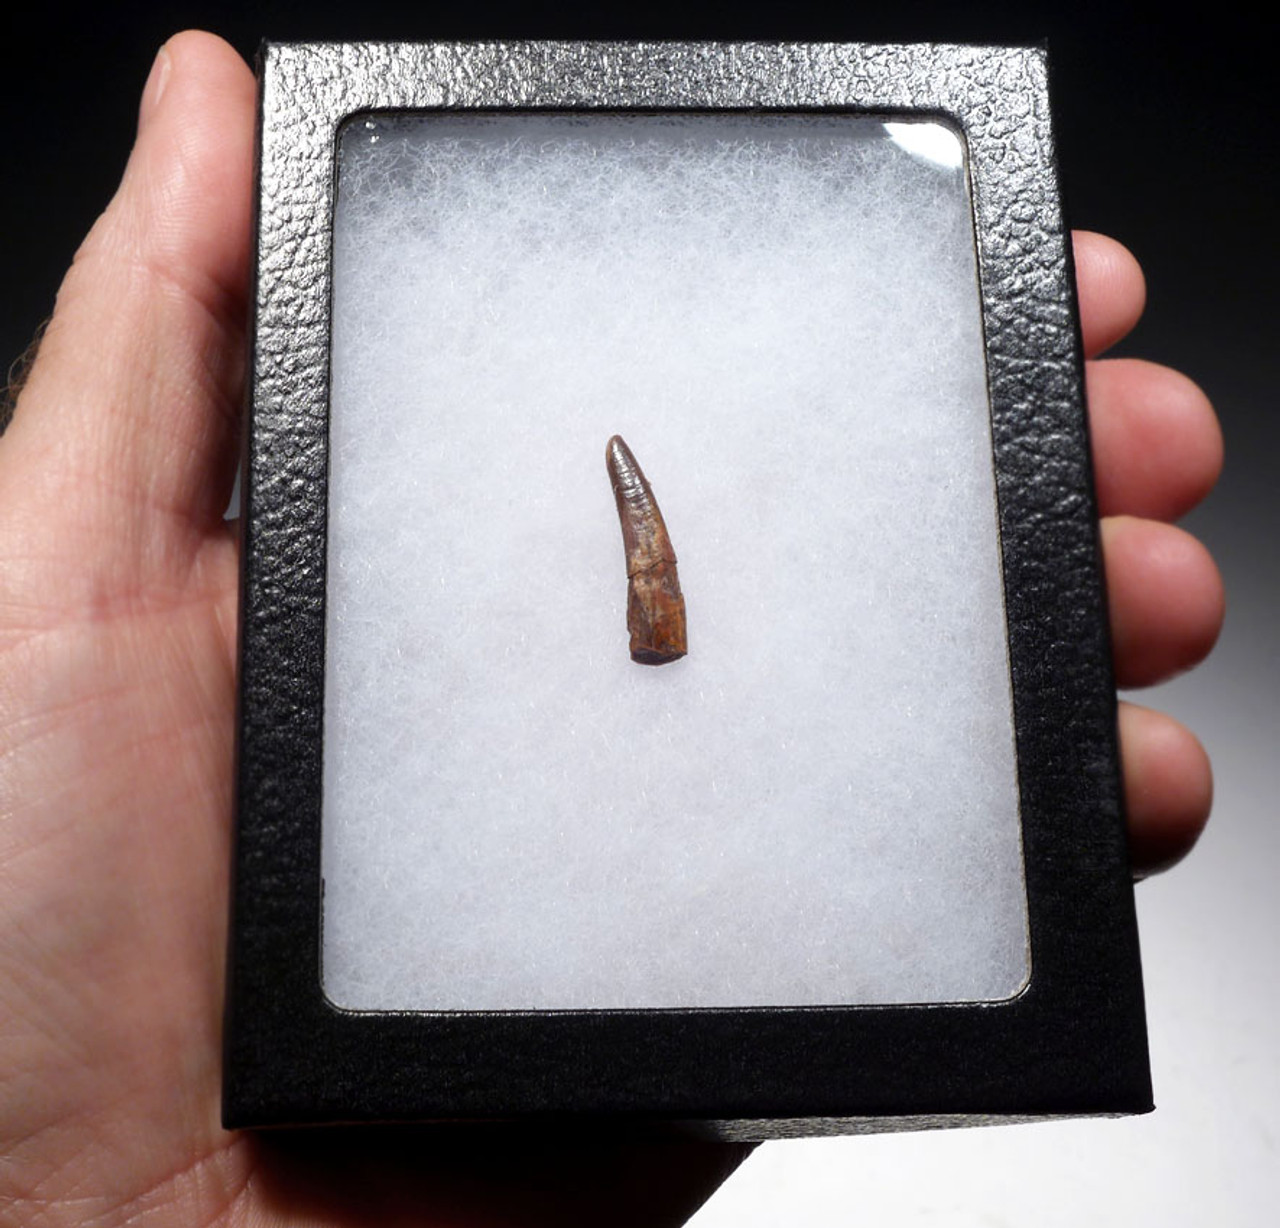 DT4-098 - CRETACEOUS PTERODACTYL PTEROSAUR FOSSIL TOOTH